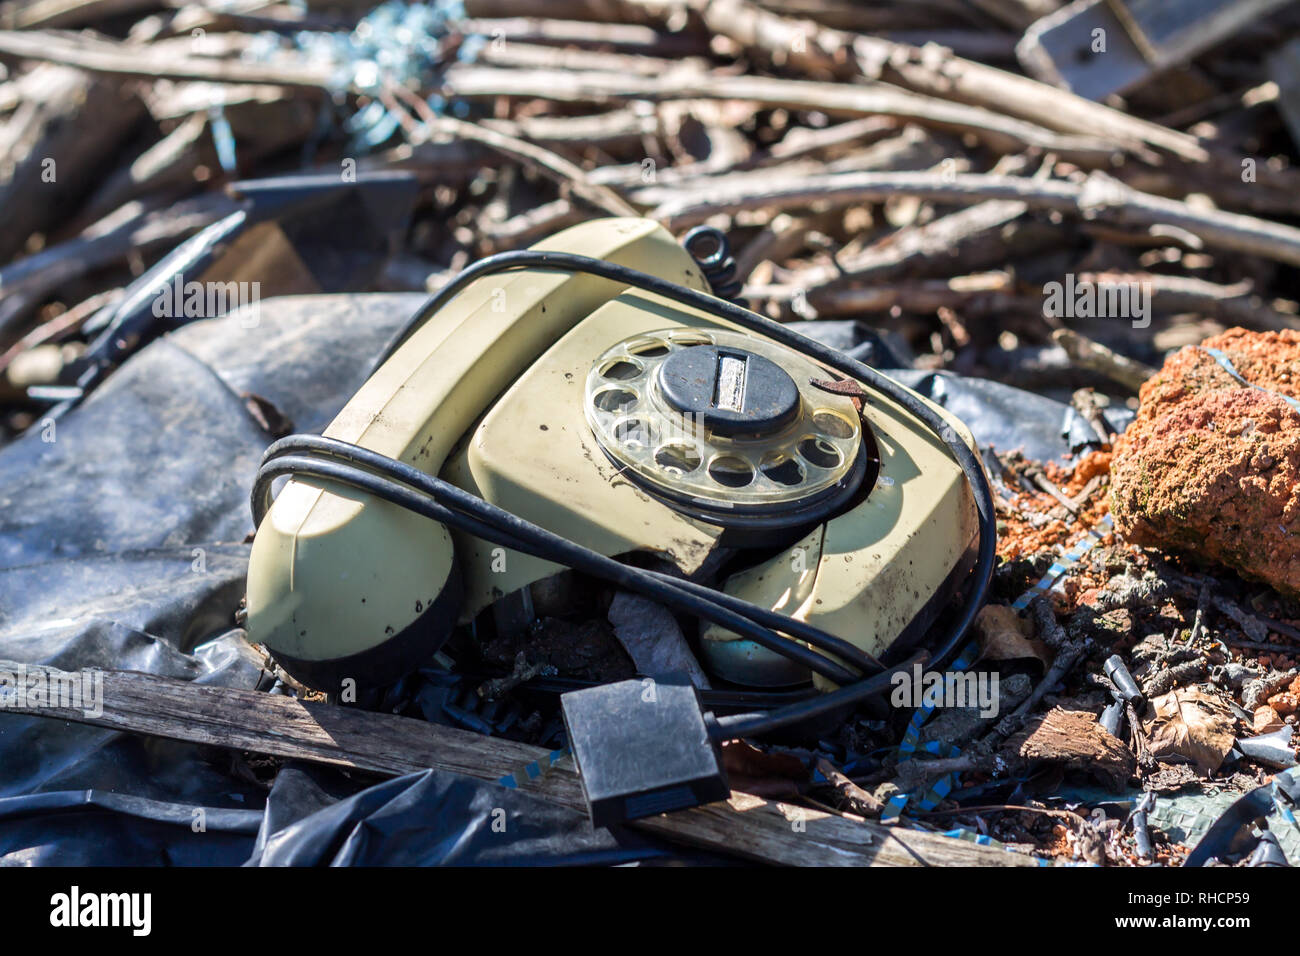 Old Retro Vintage Broken Rotary Phone - Stock Image